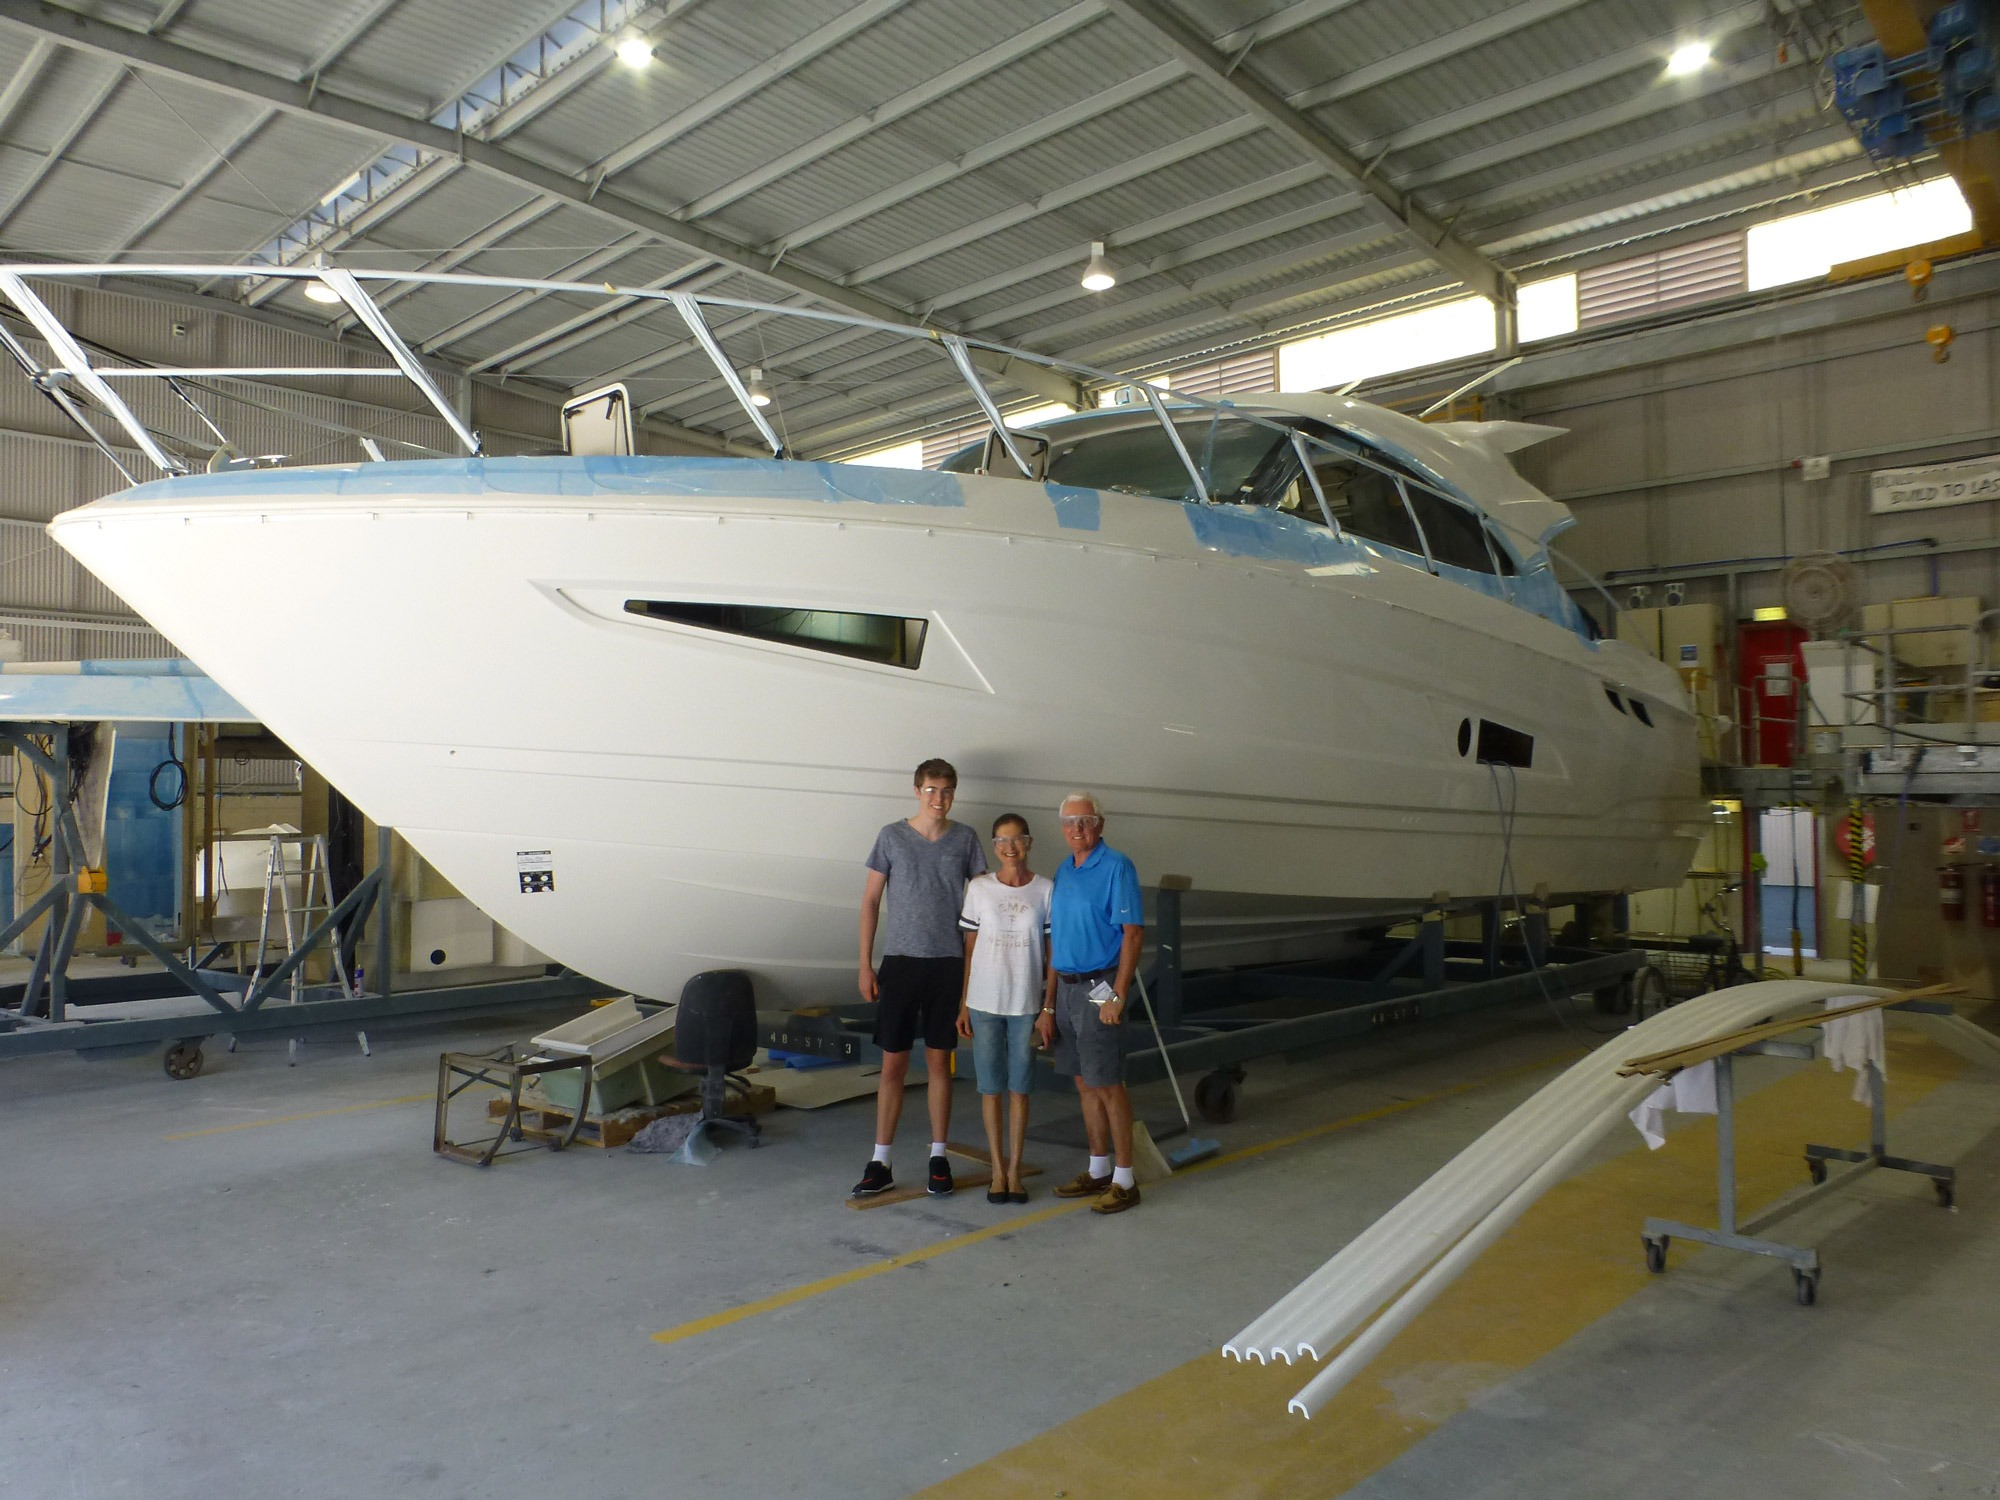 Inspecting Knight Vision during her build at the Riviera facility in Coomera.